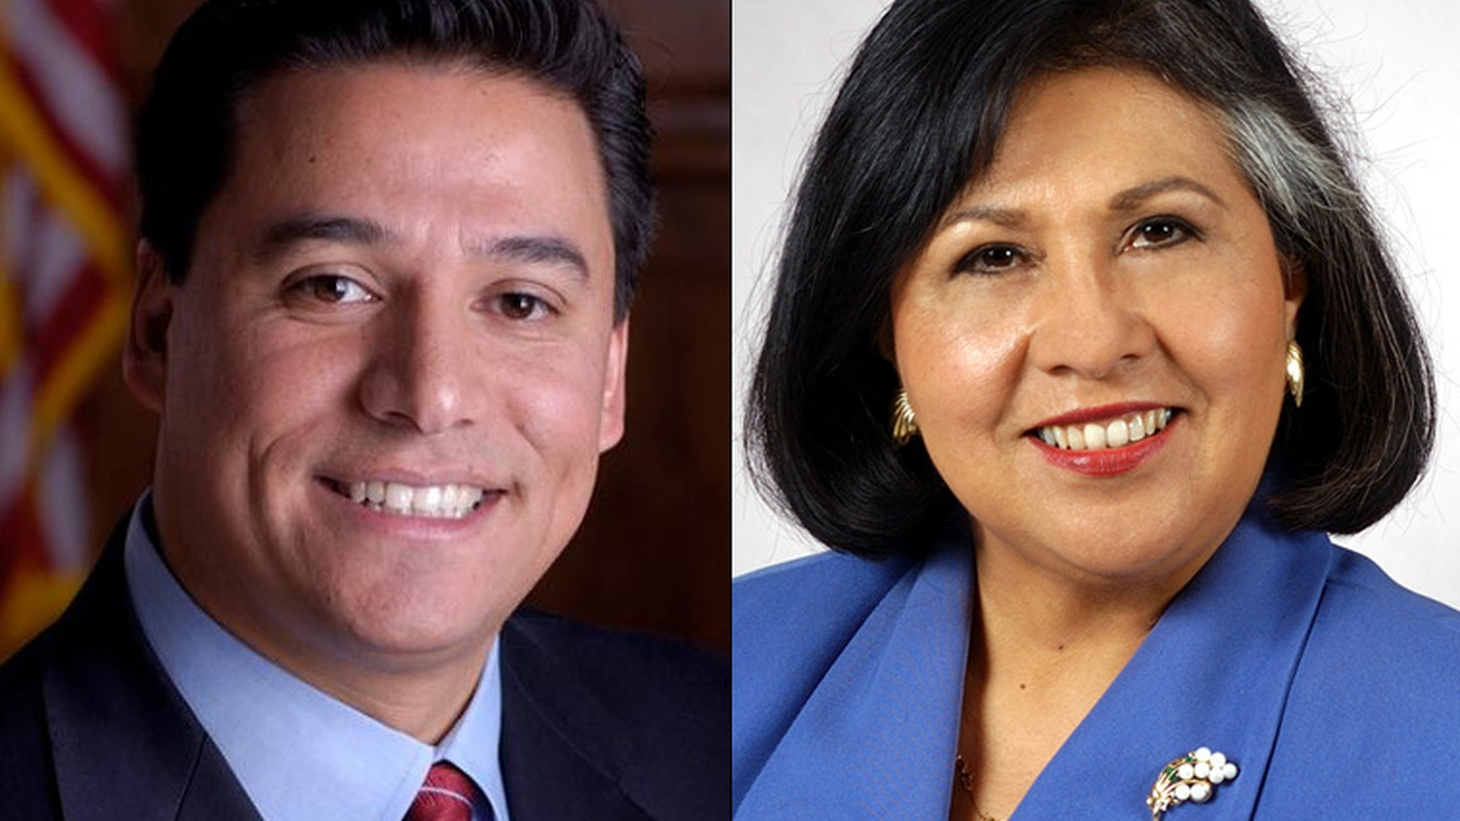 José Huizar is the incumbent in Council District 14 — now facing a surprise challenge from termed-out Supervisor Gloria Molina.  Antonio Villagraigosa has added spice to the mix by abandoning former ally Huizar and endorsing Molina. We hear about personalities, money and issues.